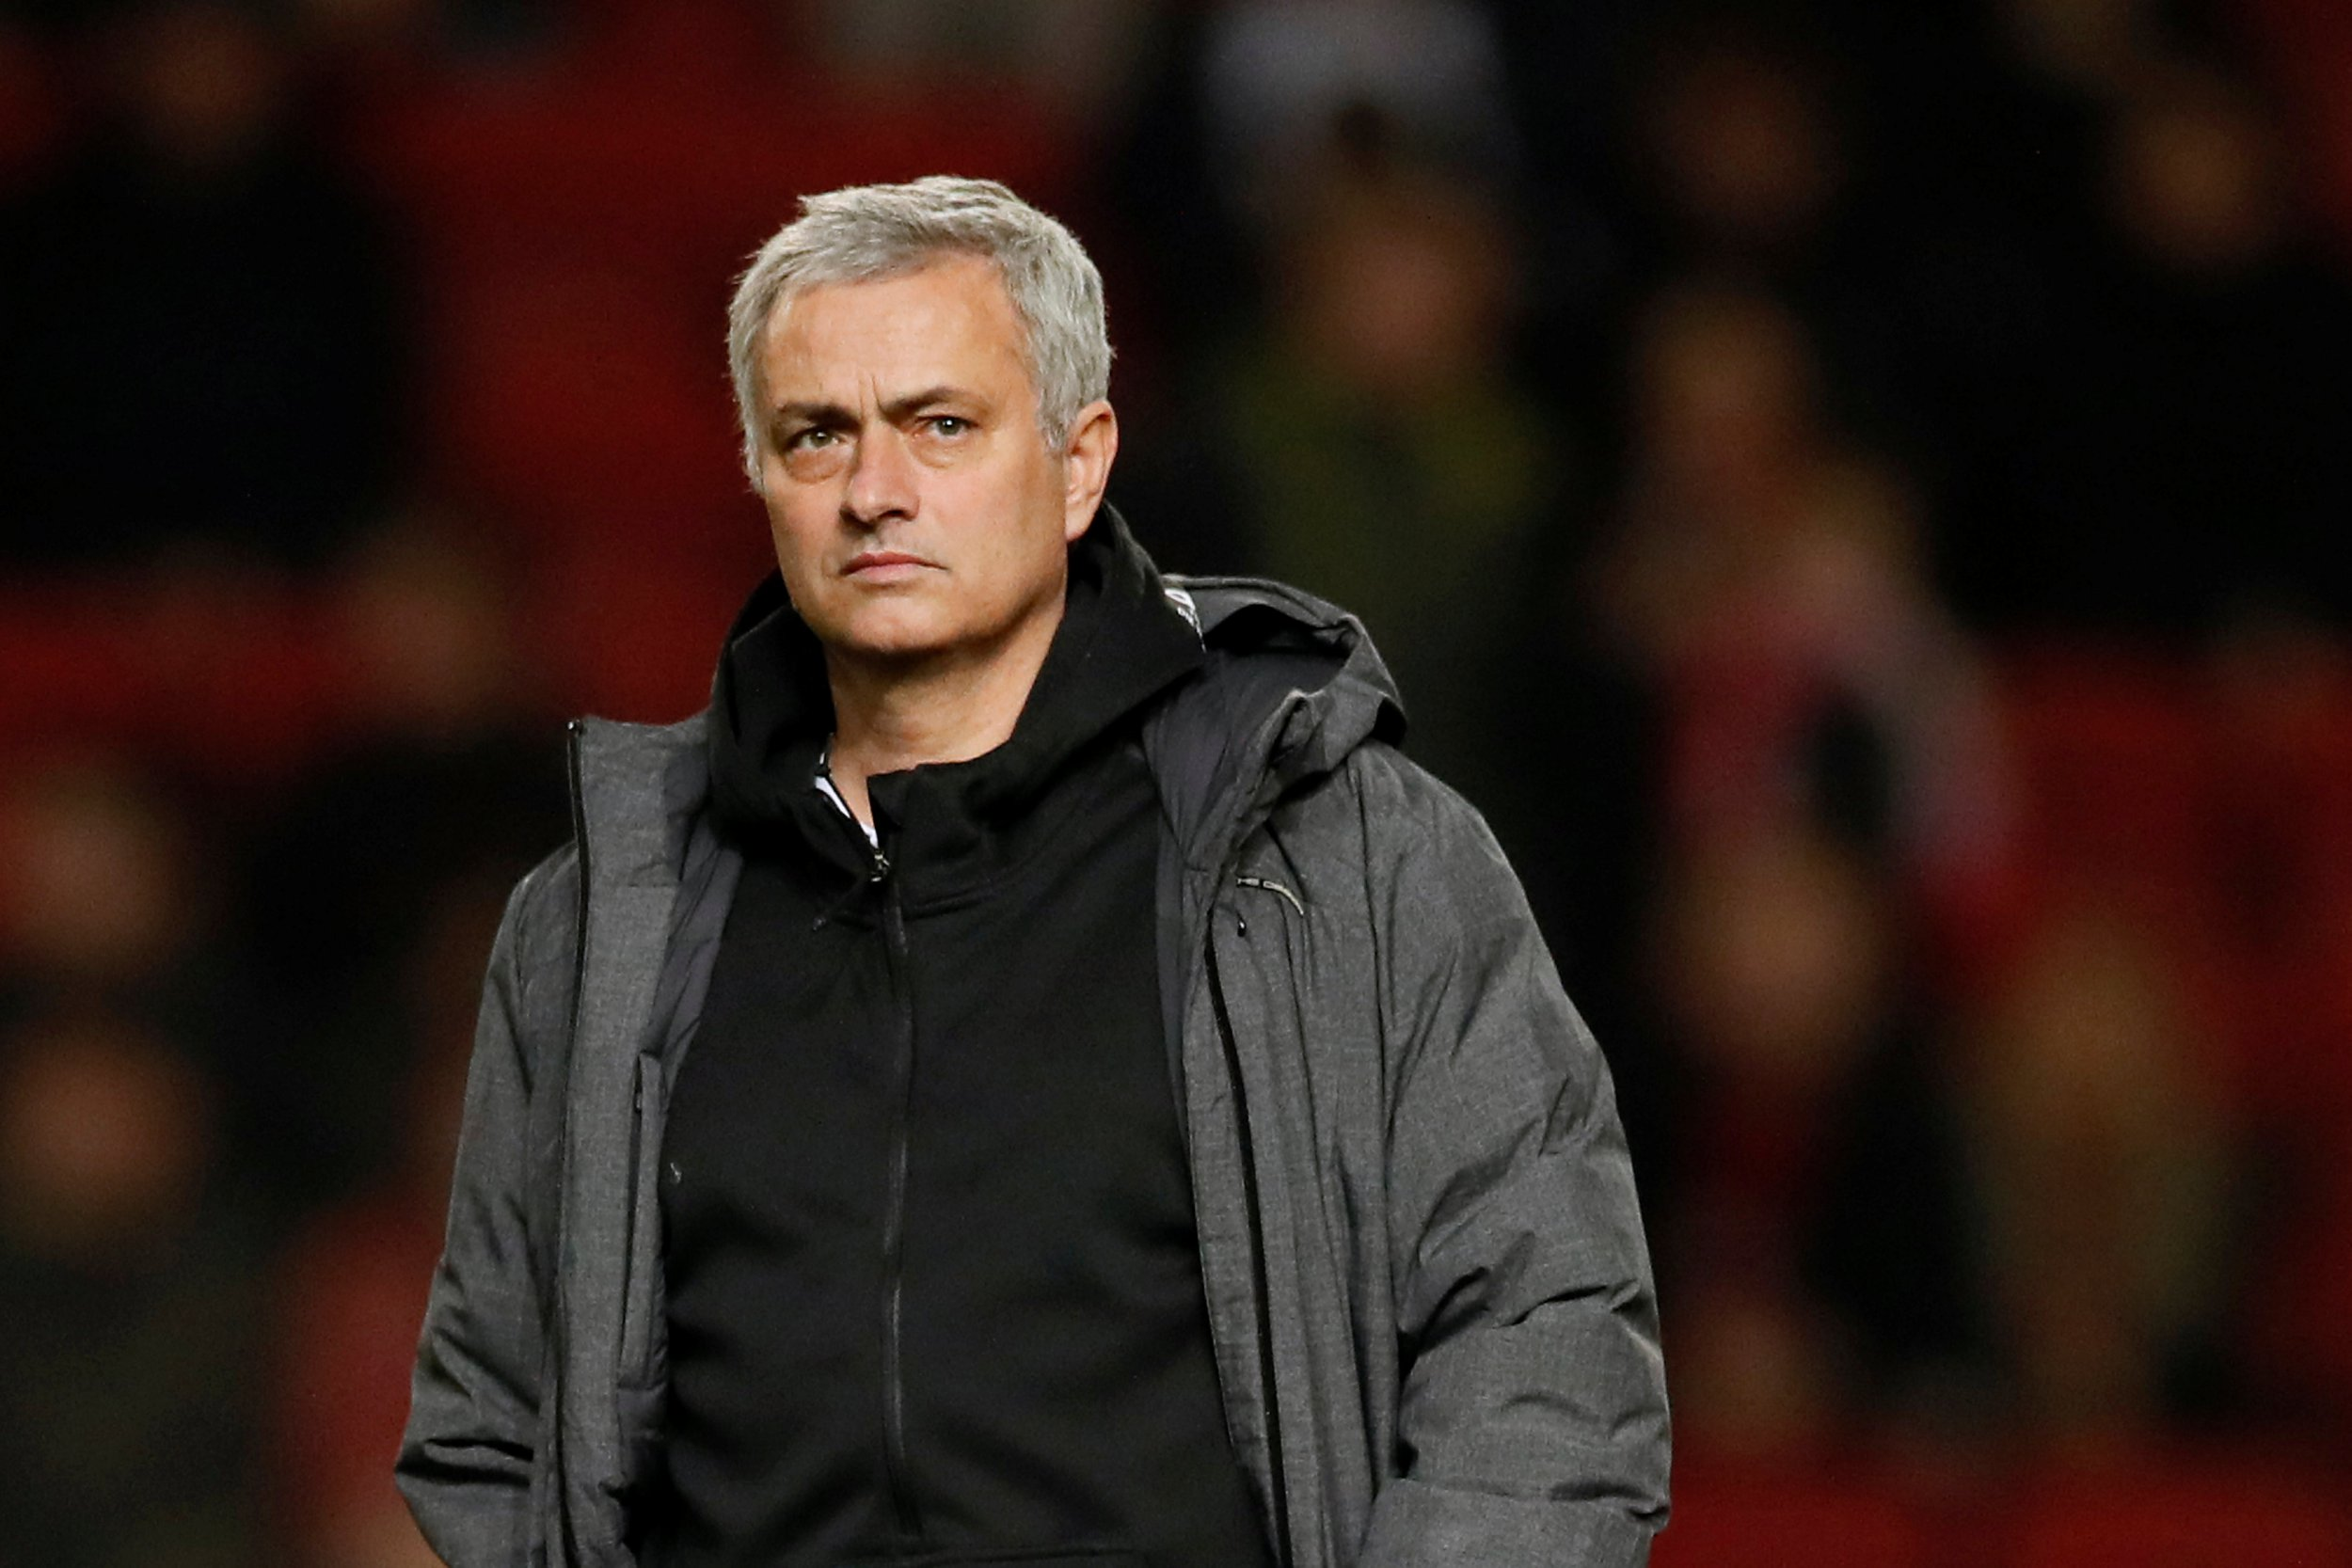 Jose Mourinho entered Bristol City's dressing room after Manchester United's shock Carabao Cup exit